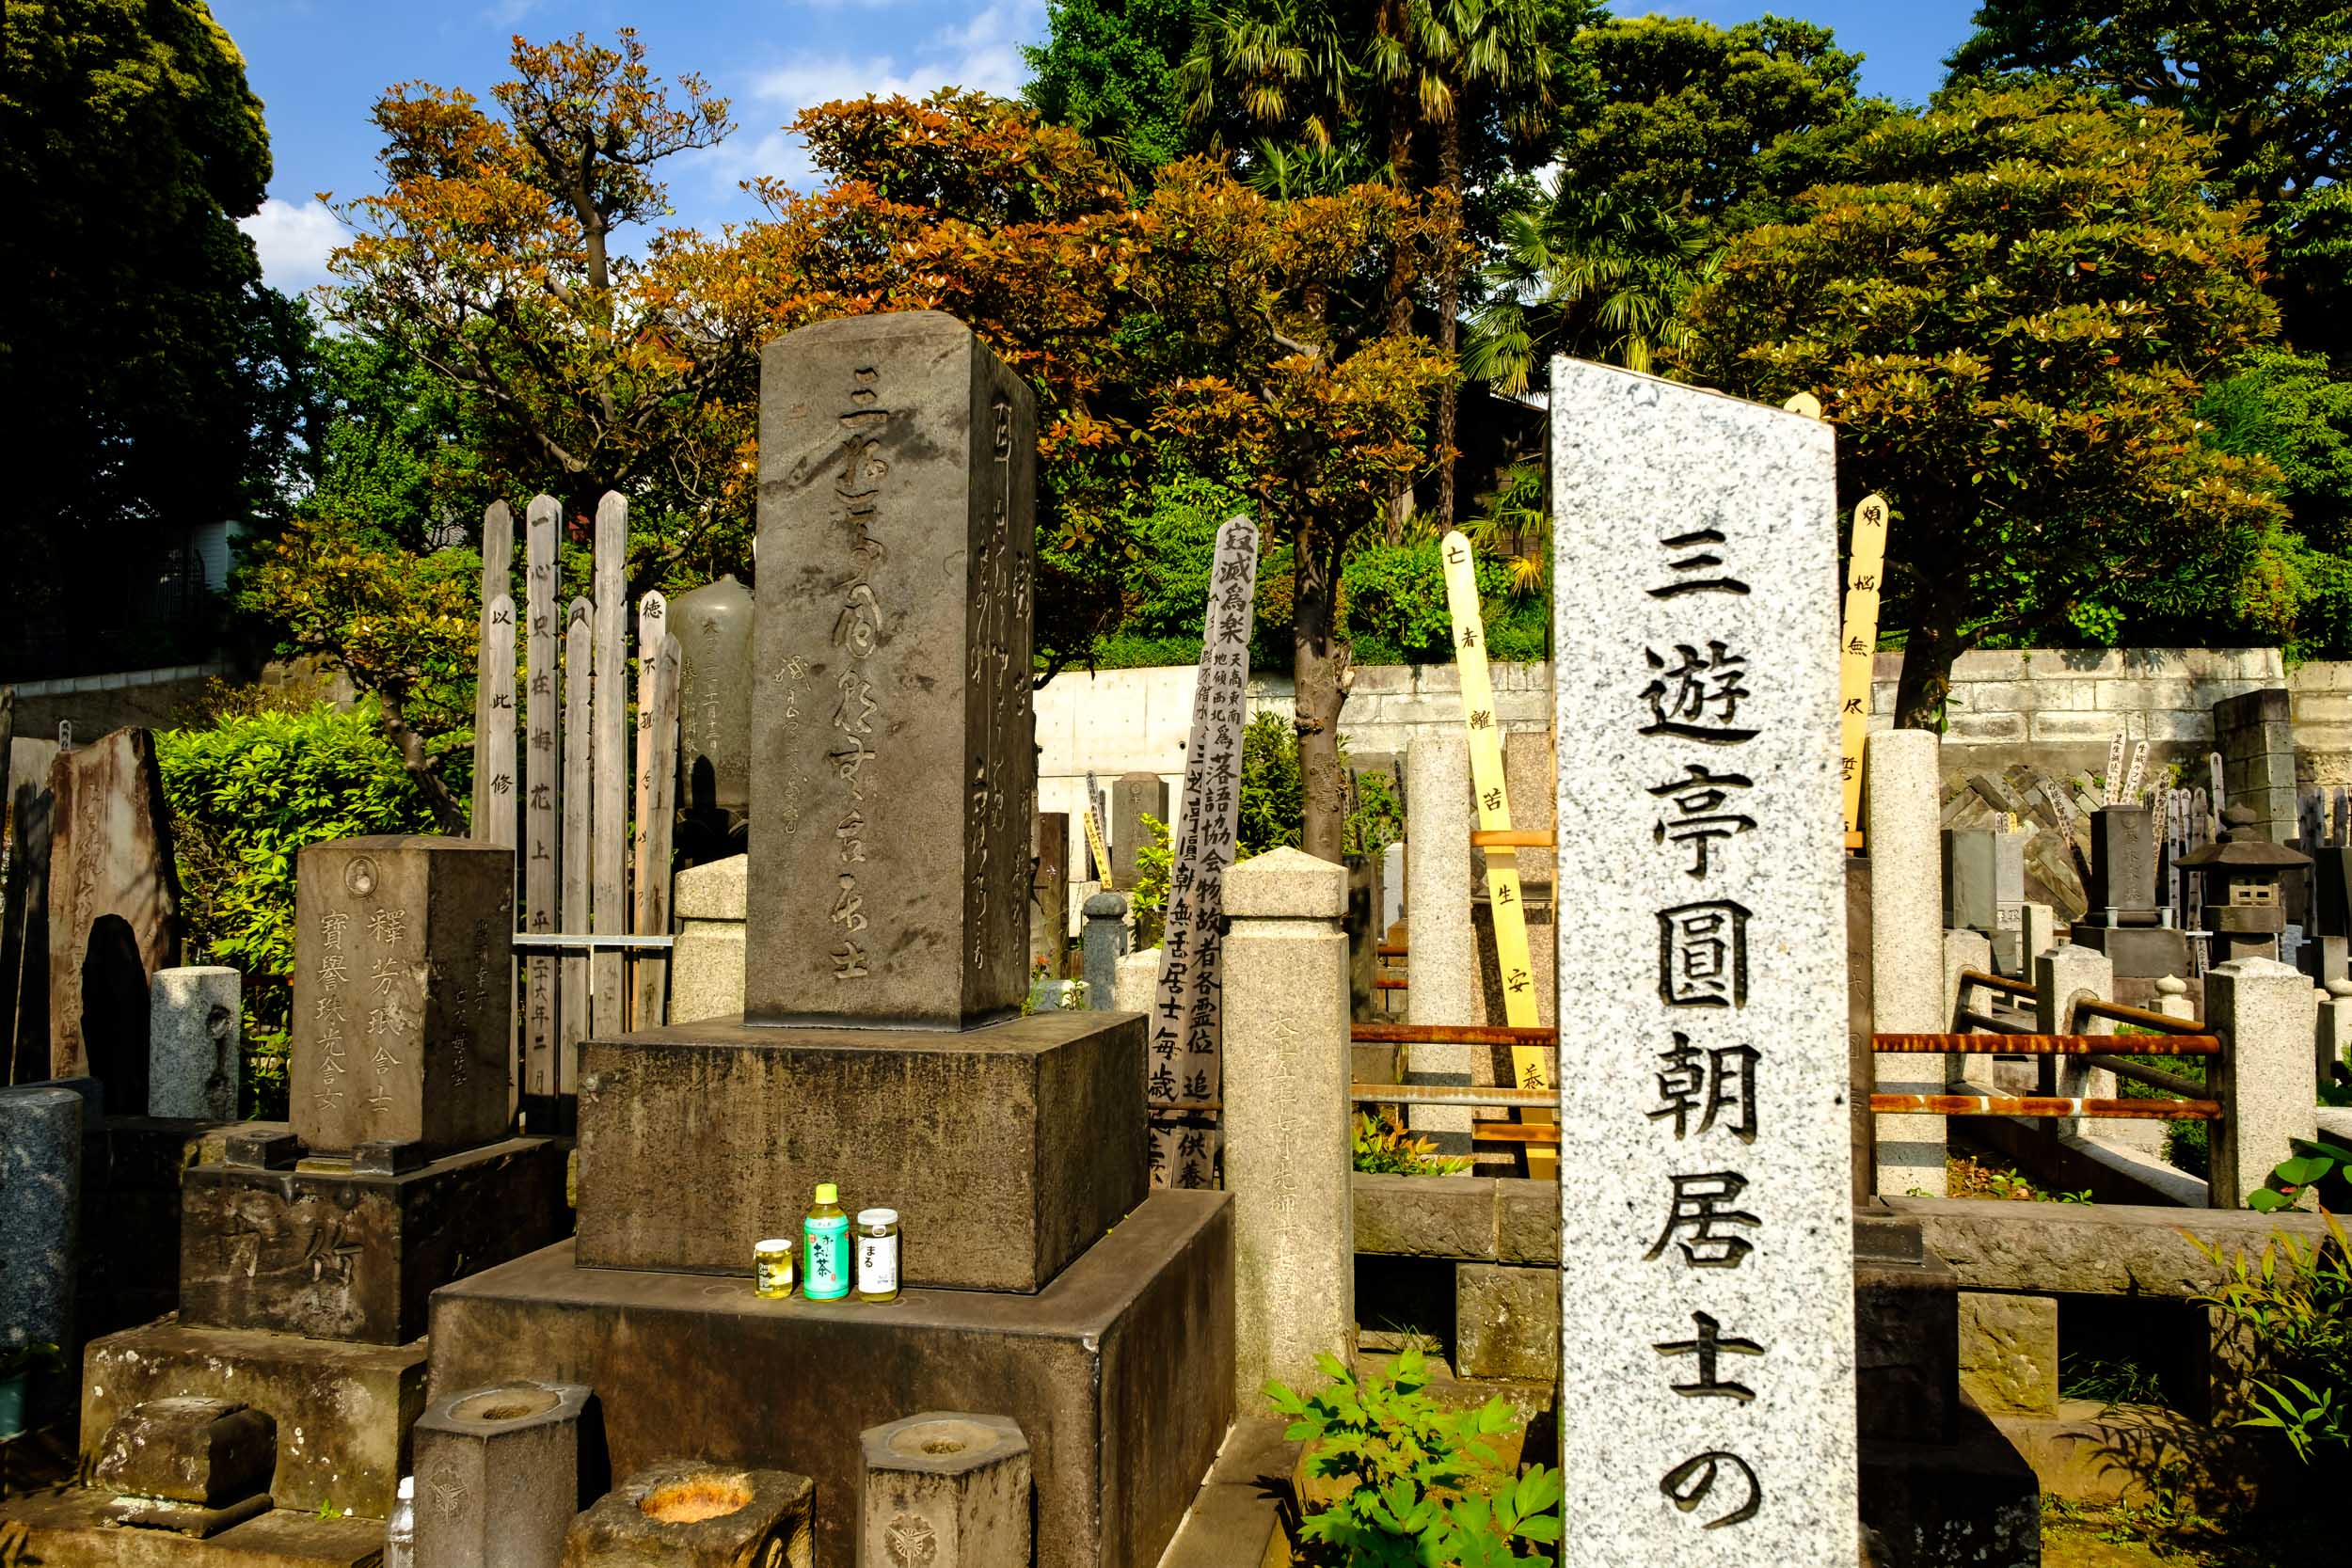 The grave of rakugo artist, Sanyutei Encho